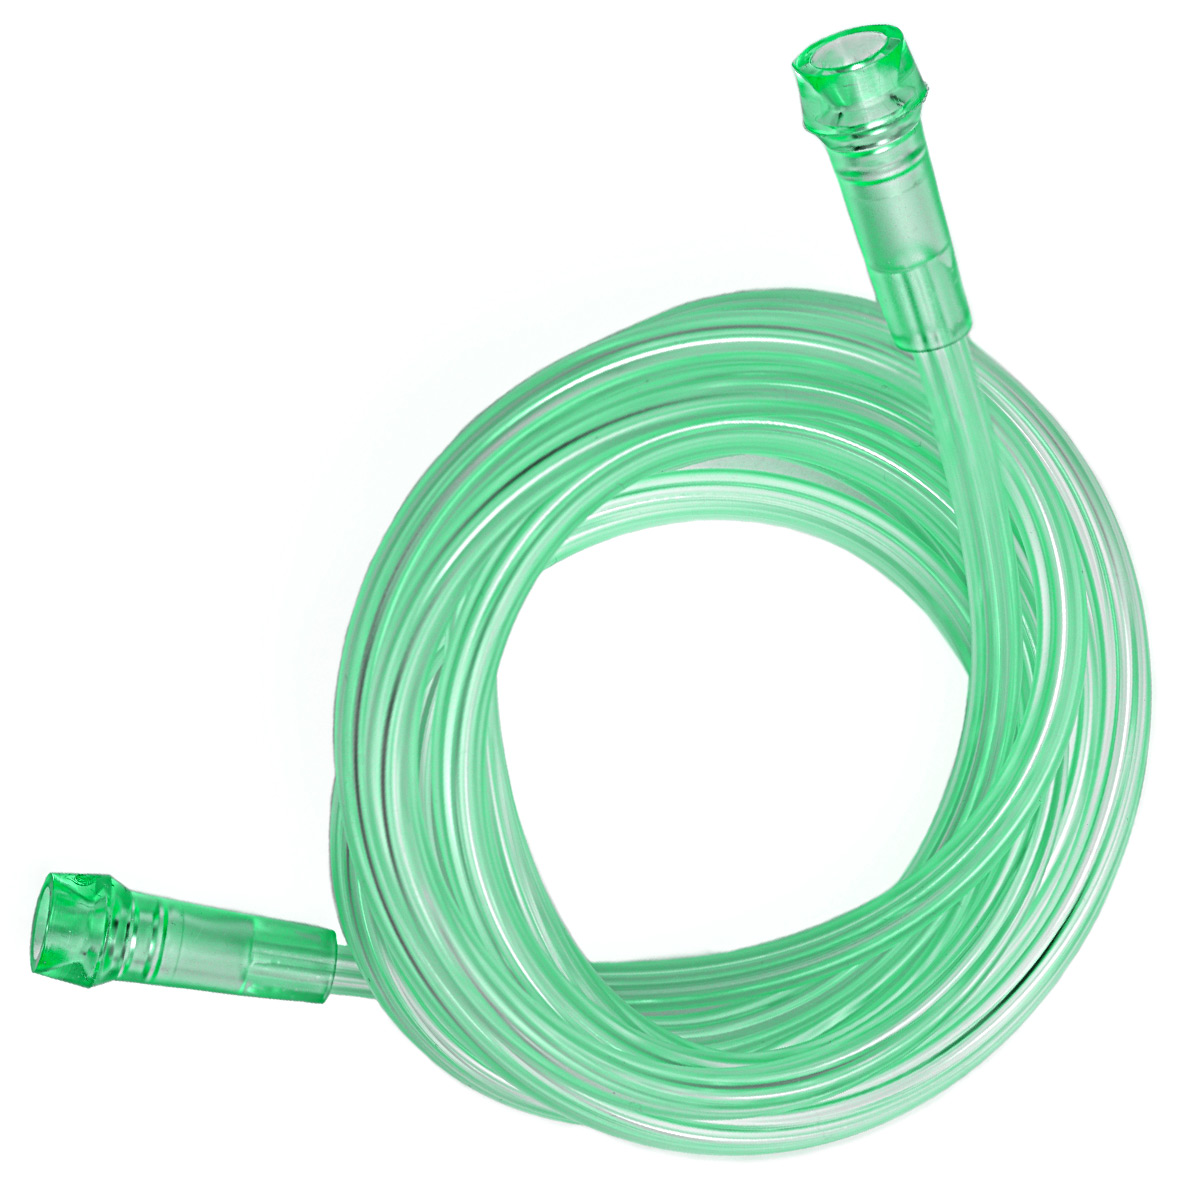 35 Foot Green Crush Resistant Multi-Channel Lumen Oxygen Supply Tubing (Case of 20)